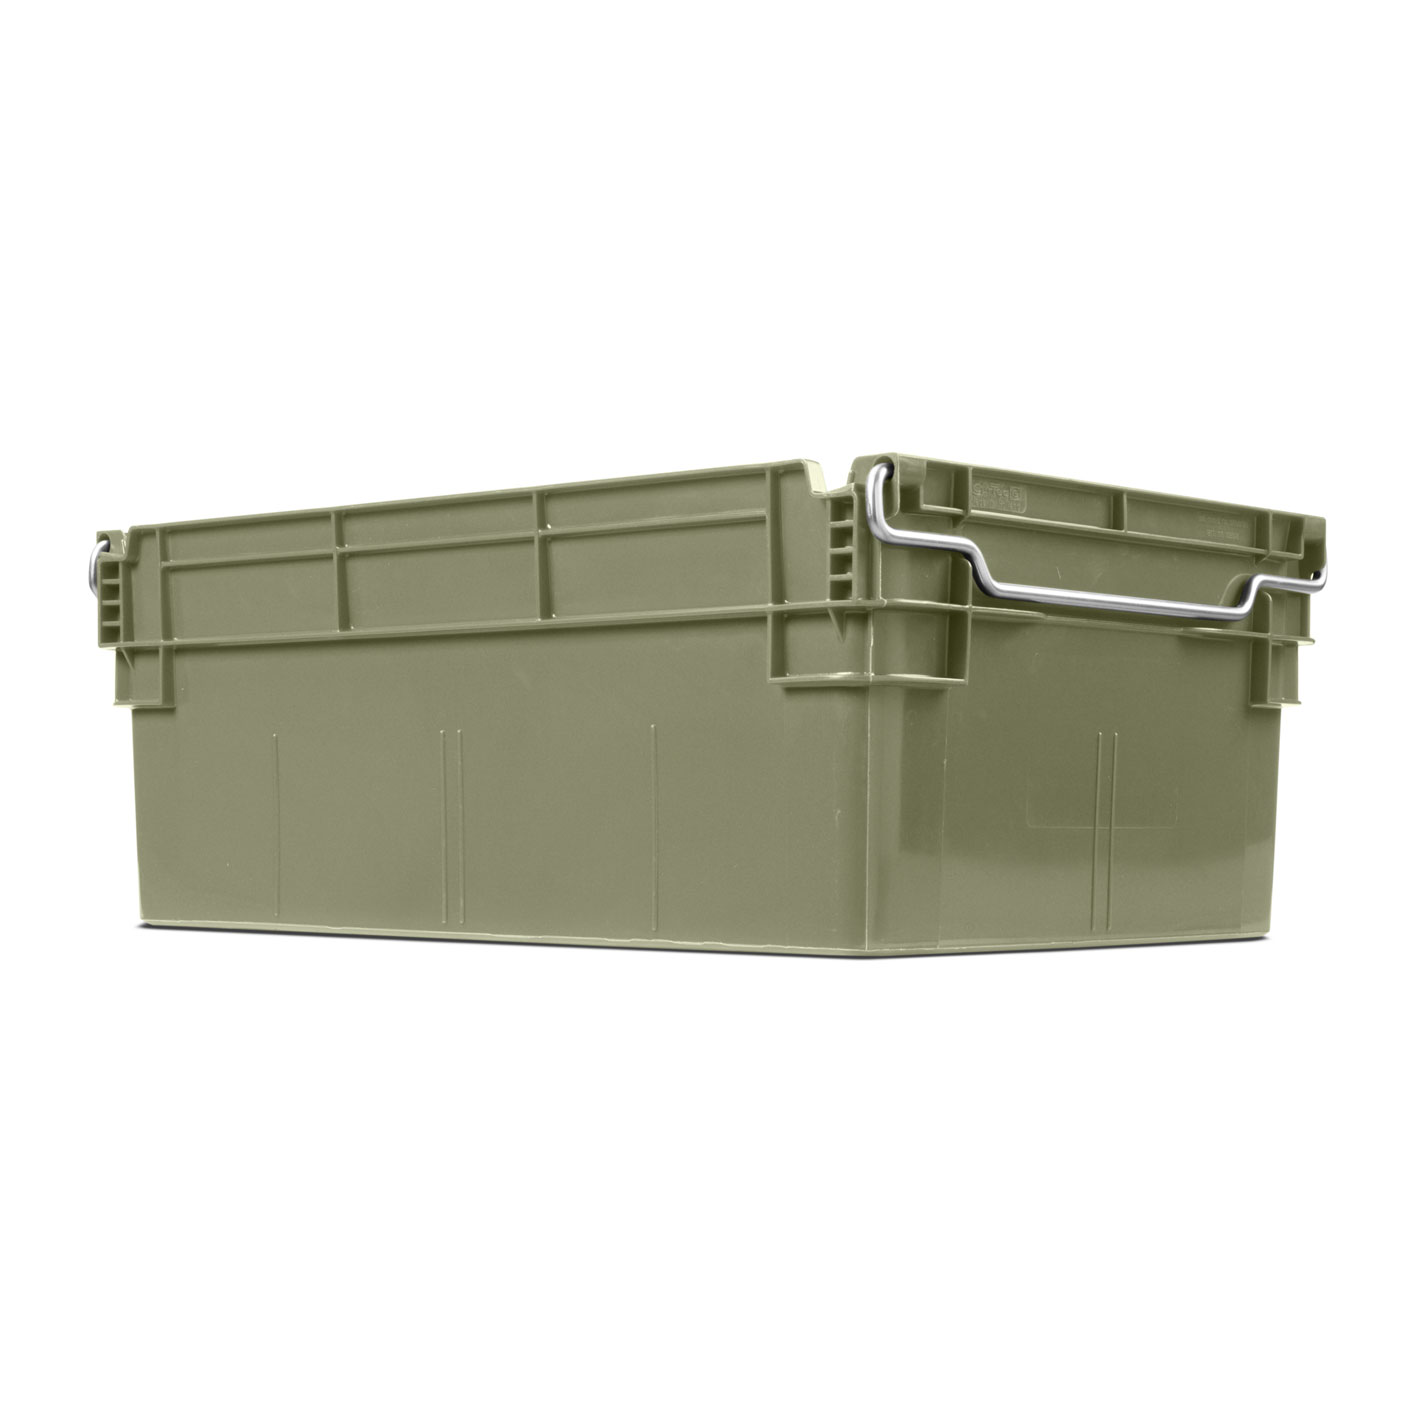 45 litre swingbar crate